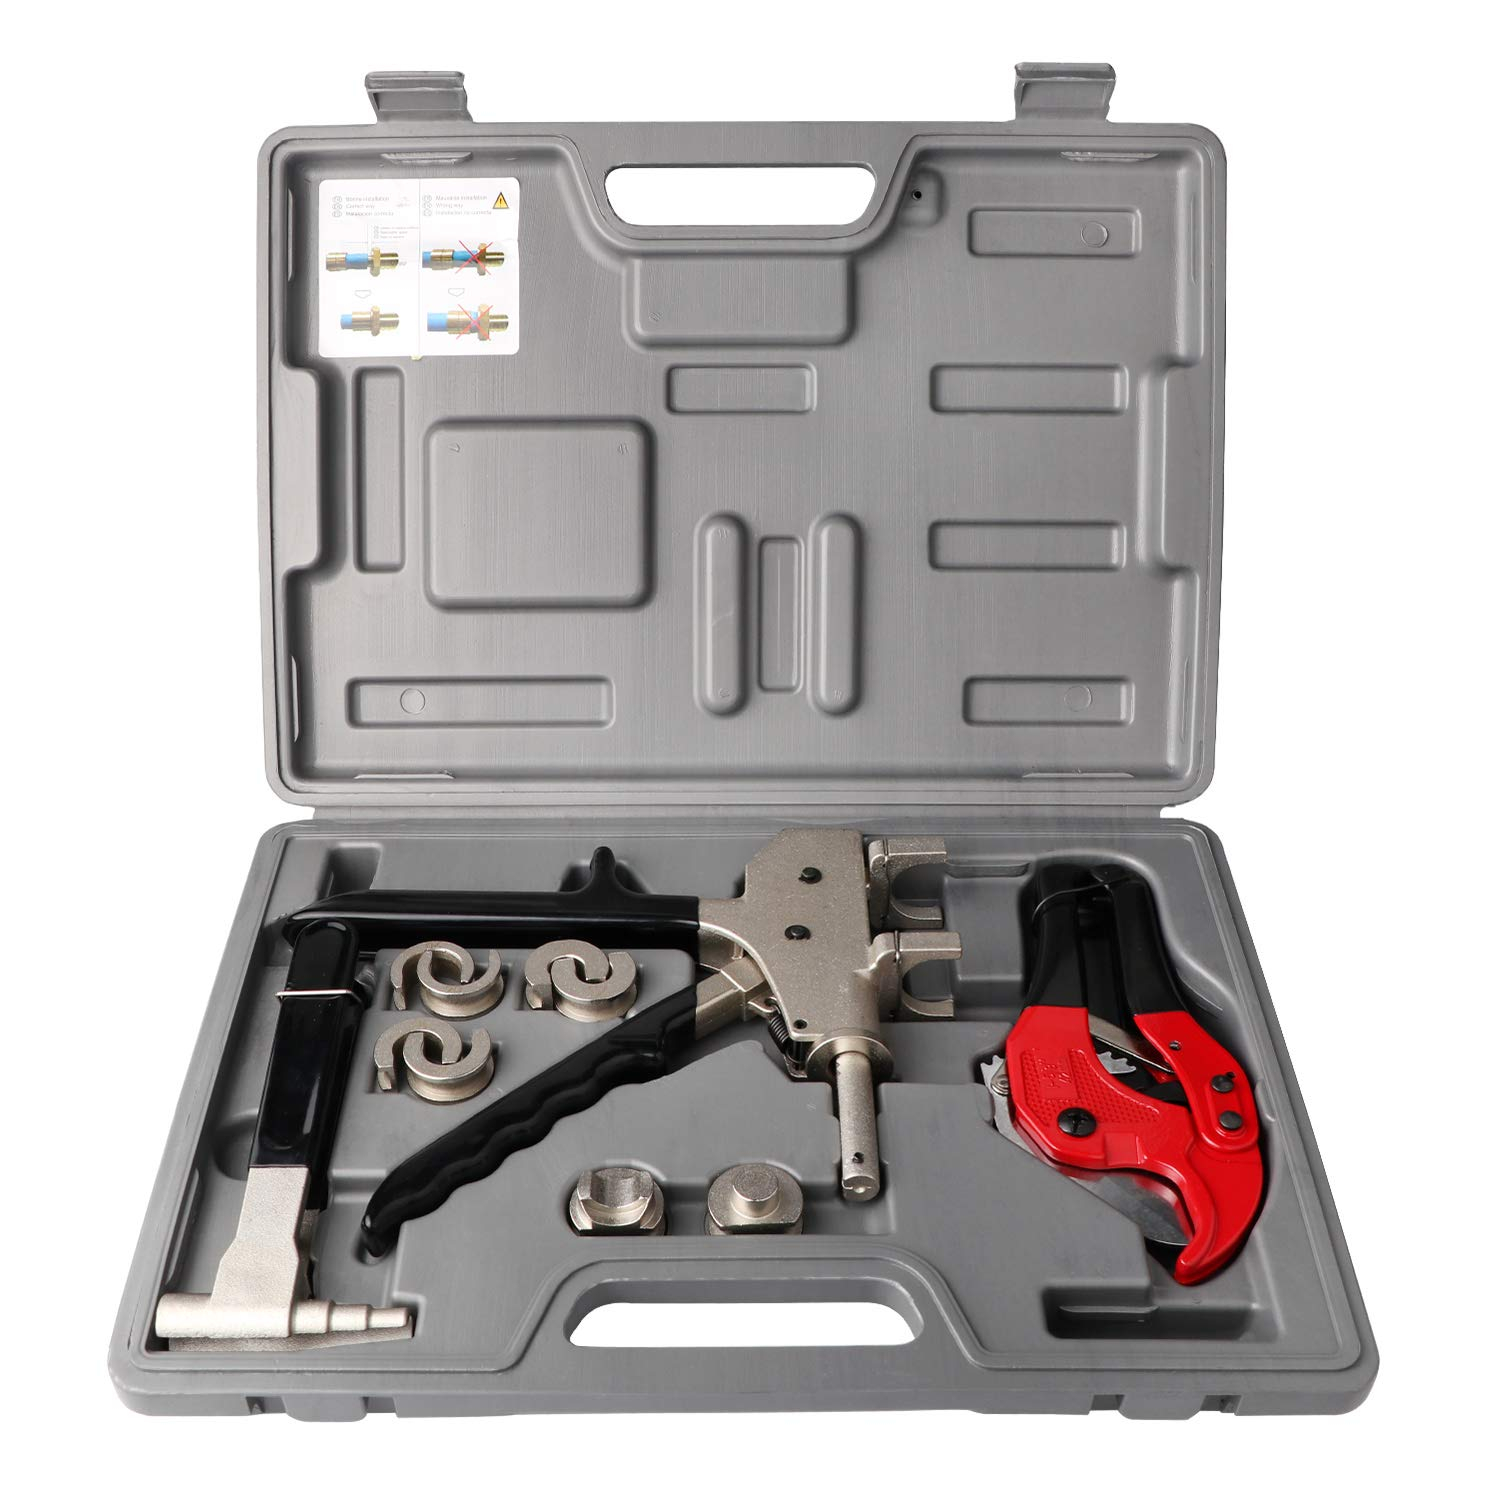 GETUHAND PEX-1225 Plumbing Tool Set Range 12-25mm Used for REHAU PEX Fittings with Pex Pressing and Expanding Tools,Tube Cutter,Cradle